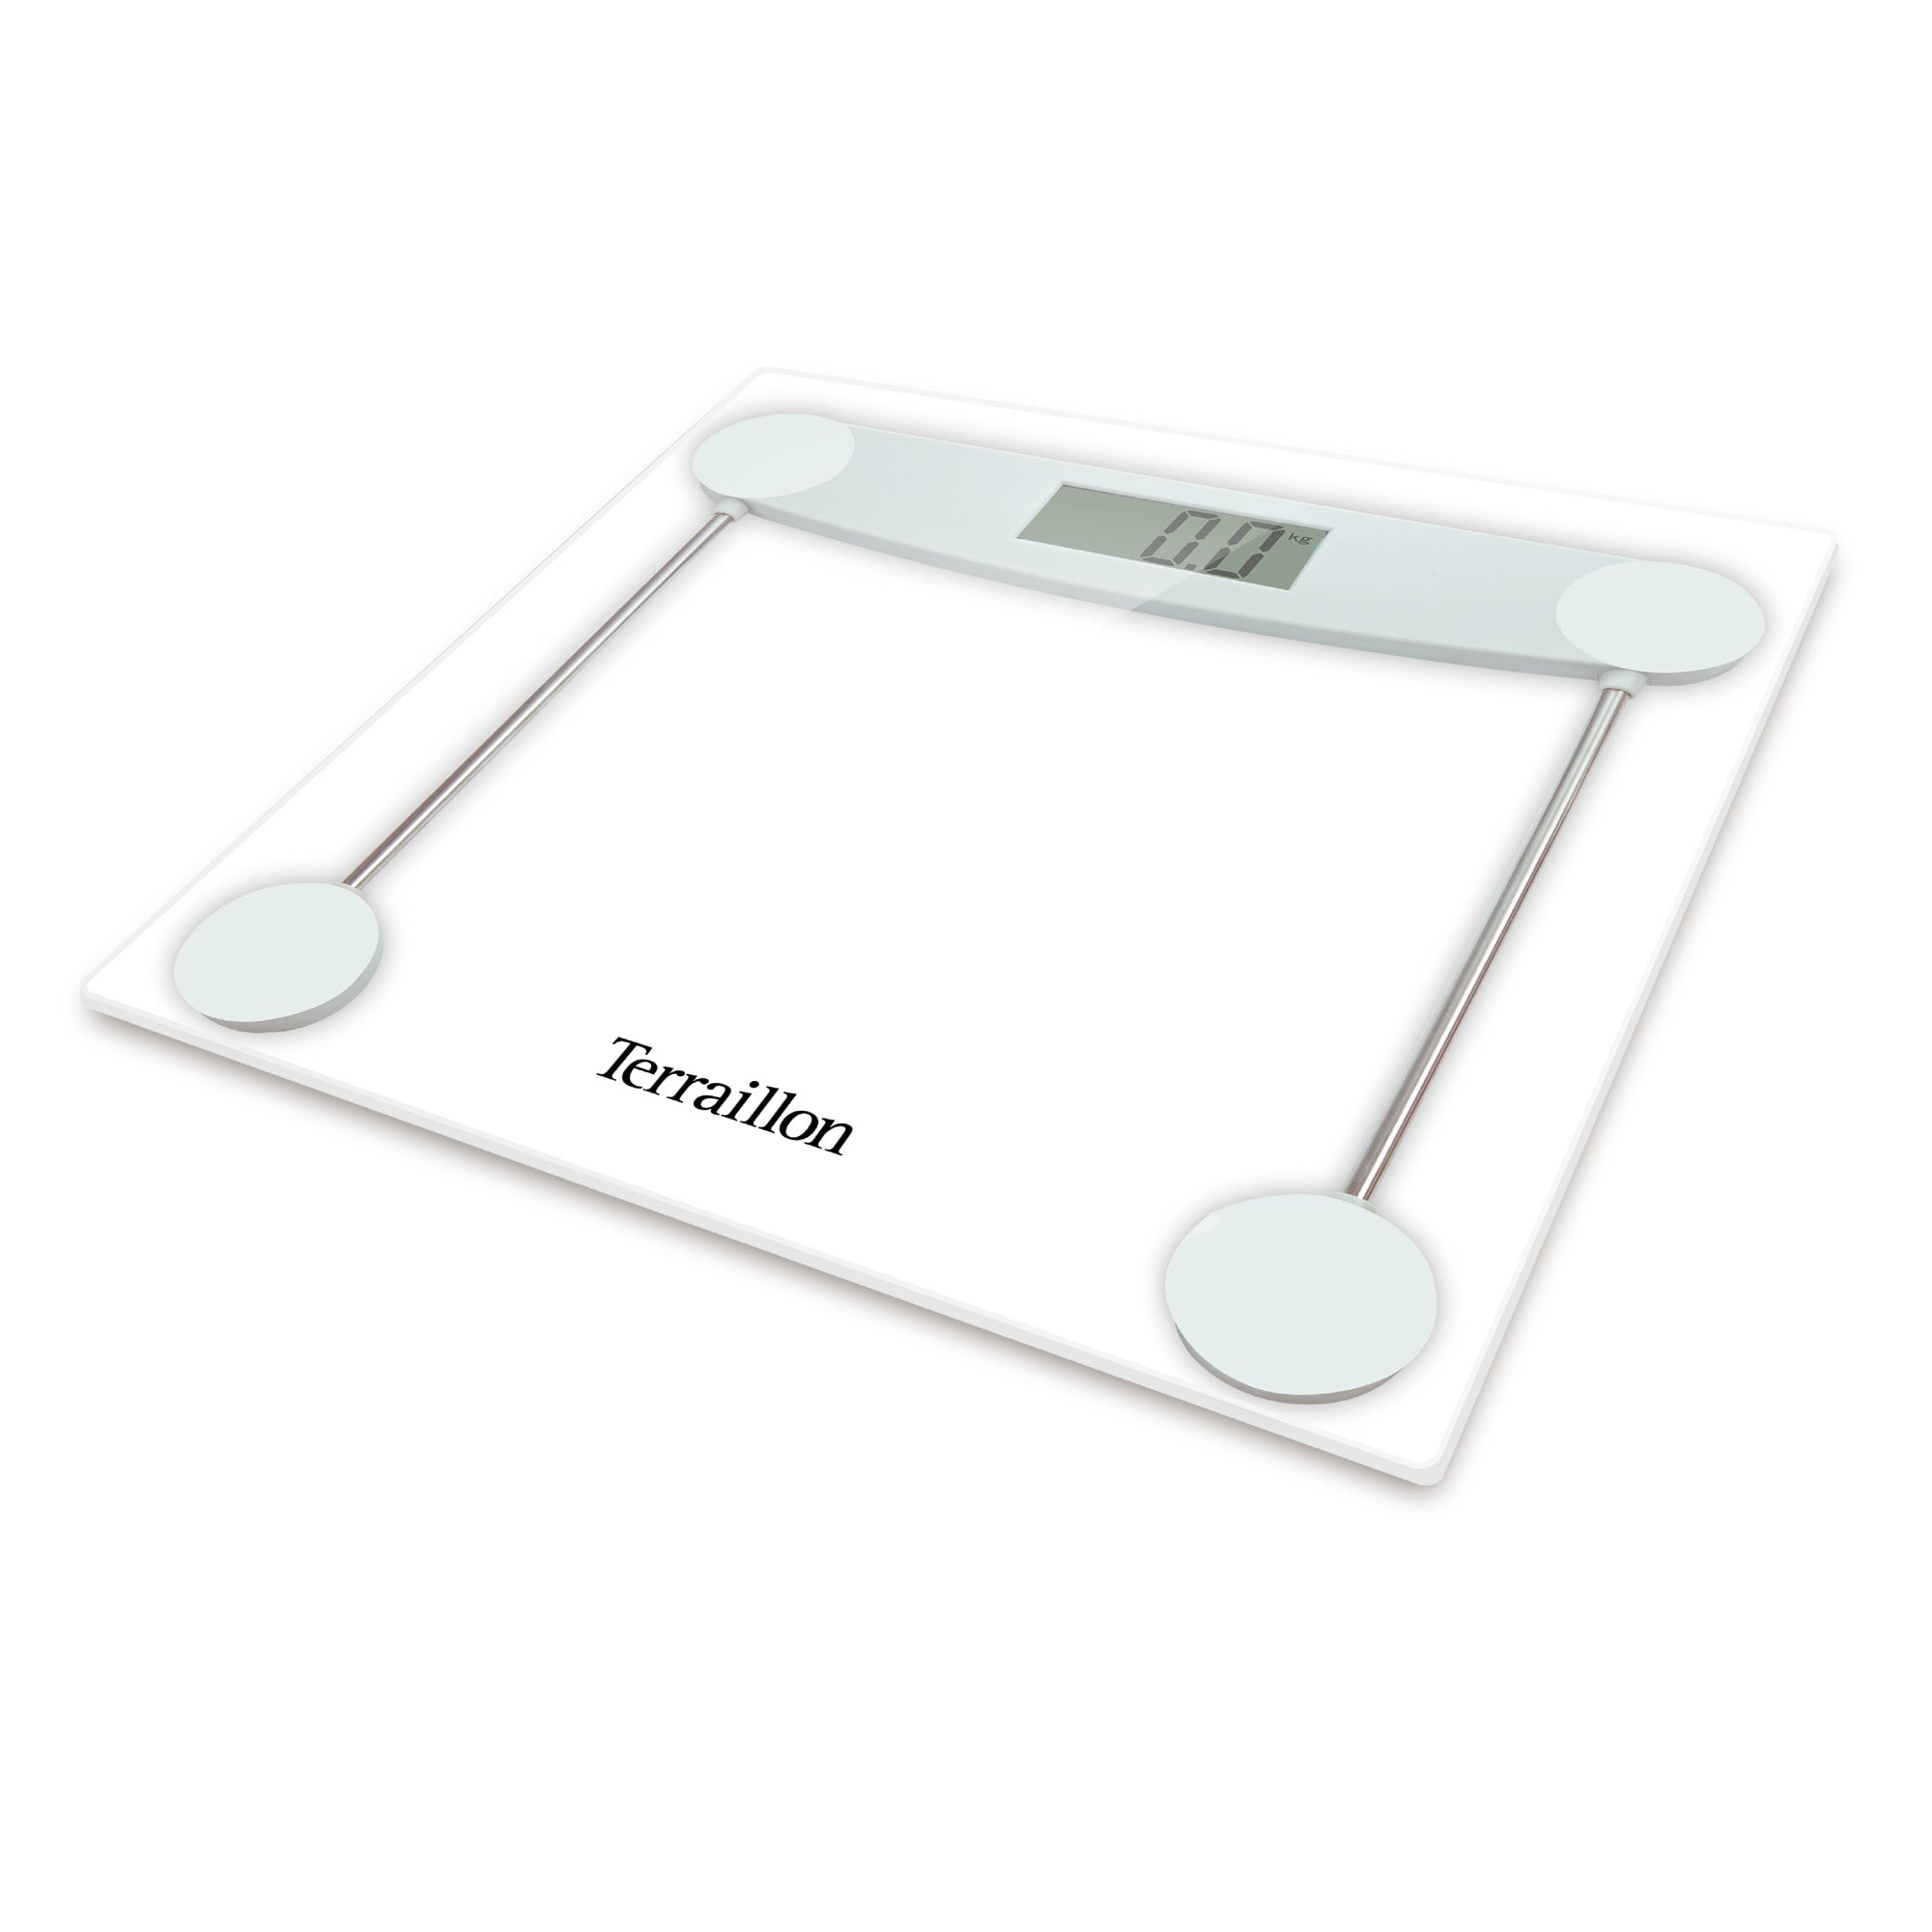 Image of Hanson HX5000 Clear Glass Electronic Bathroom Scales Clear